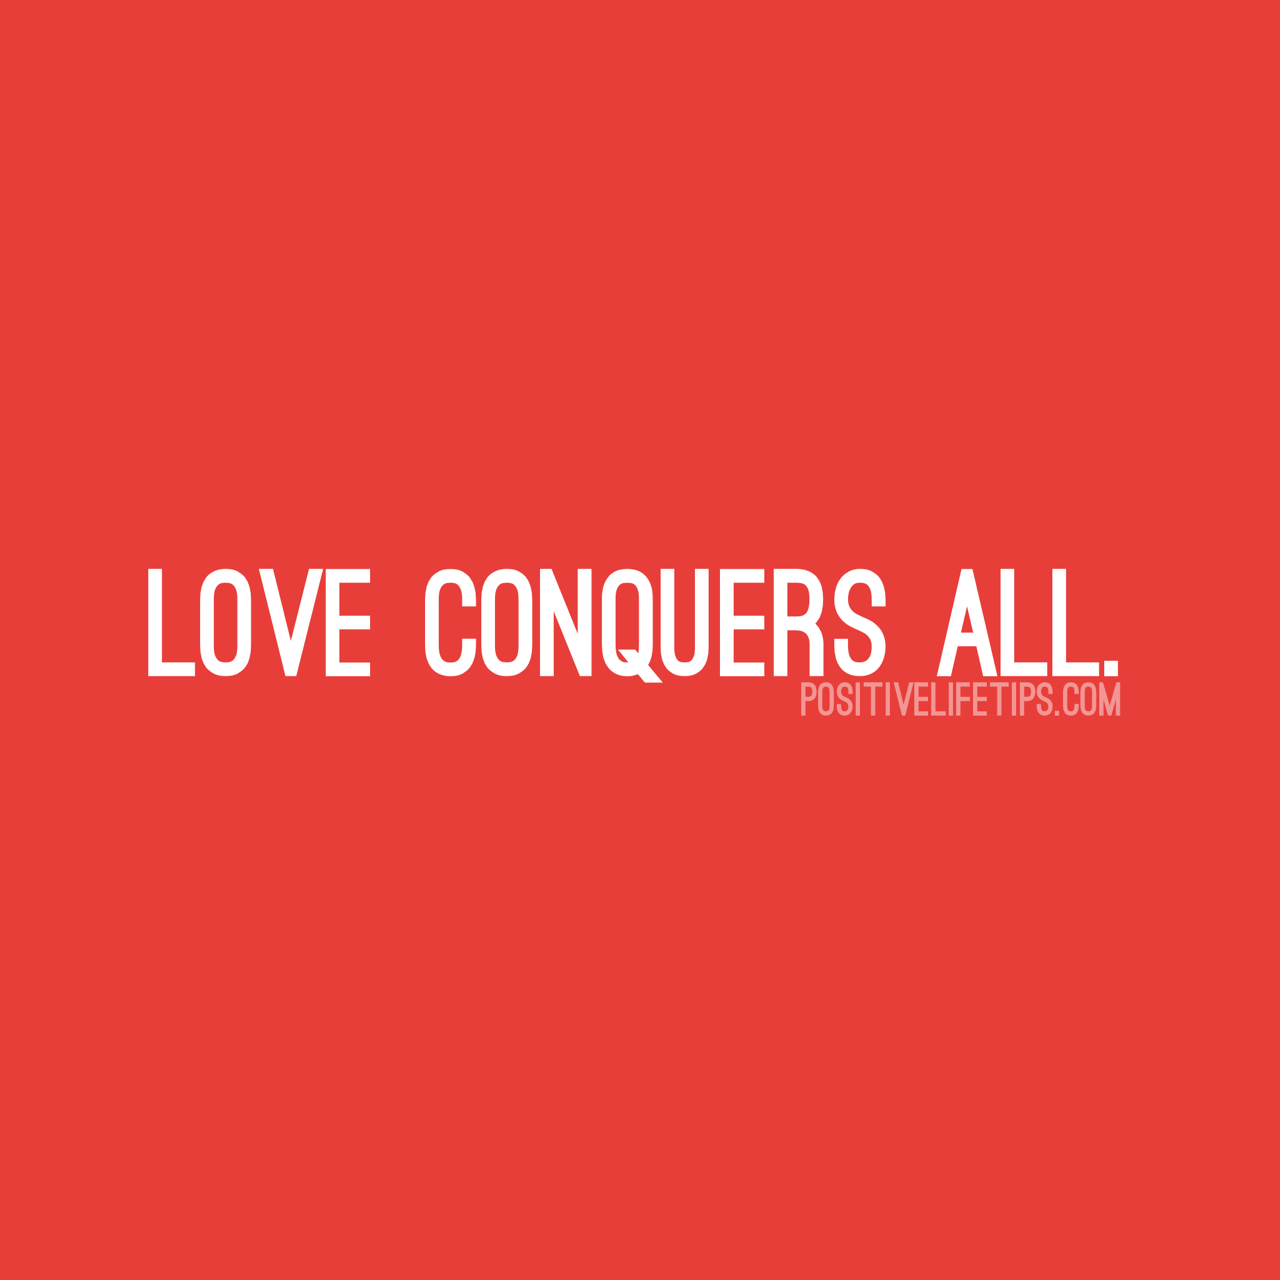 positivelifetips: LOVE CONQUERS ALL!